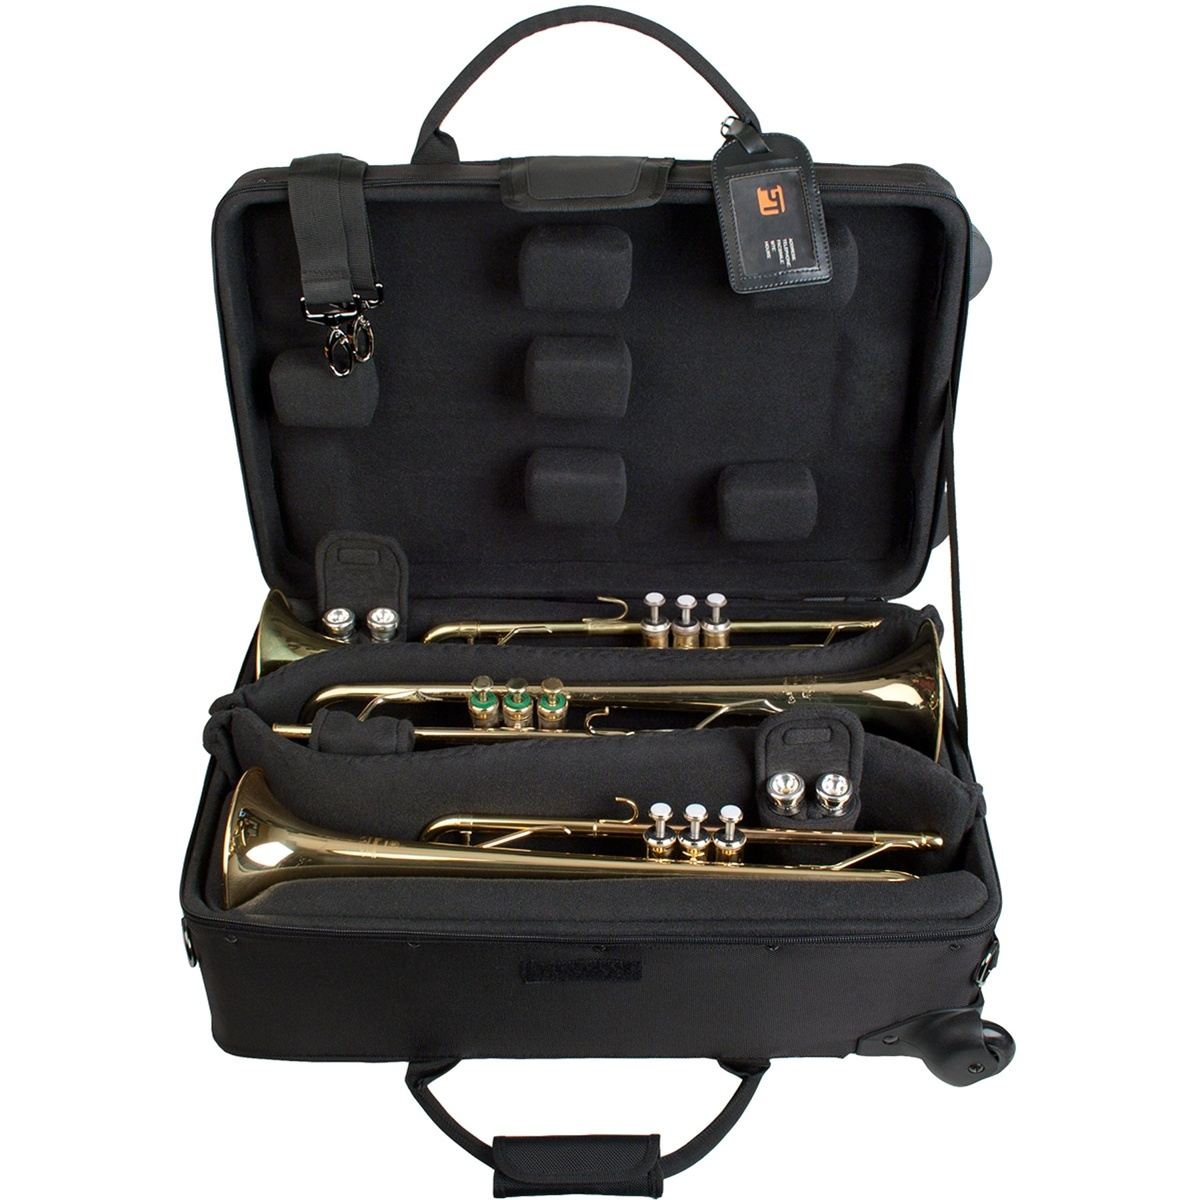 Protec Protec IPAC Triple Trumpet Case with Wheels